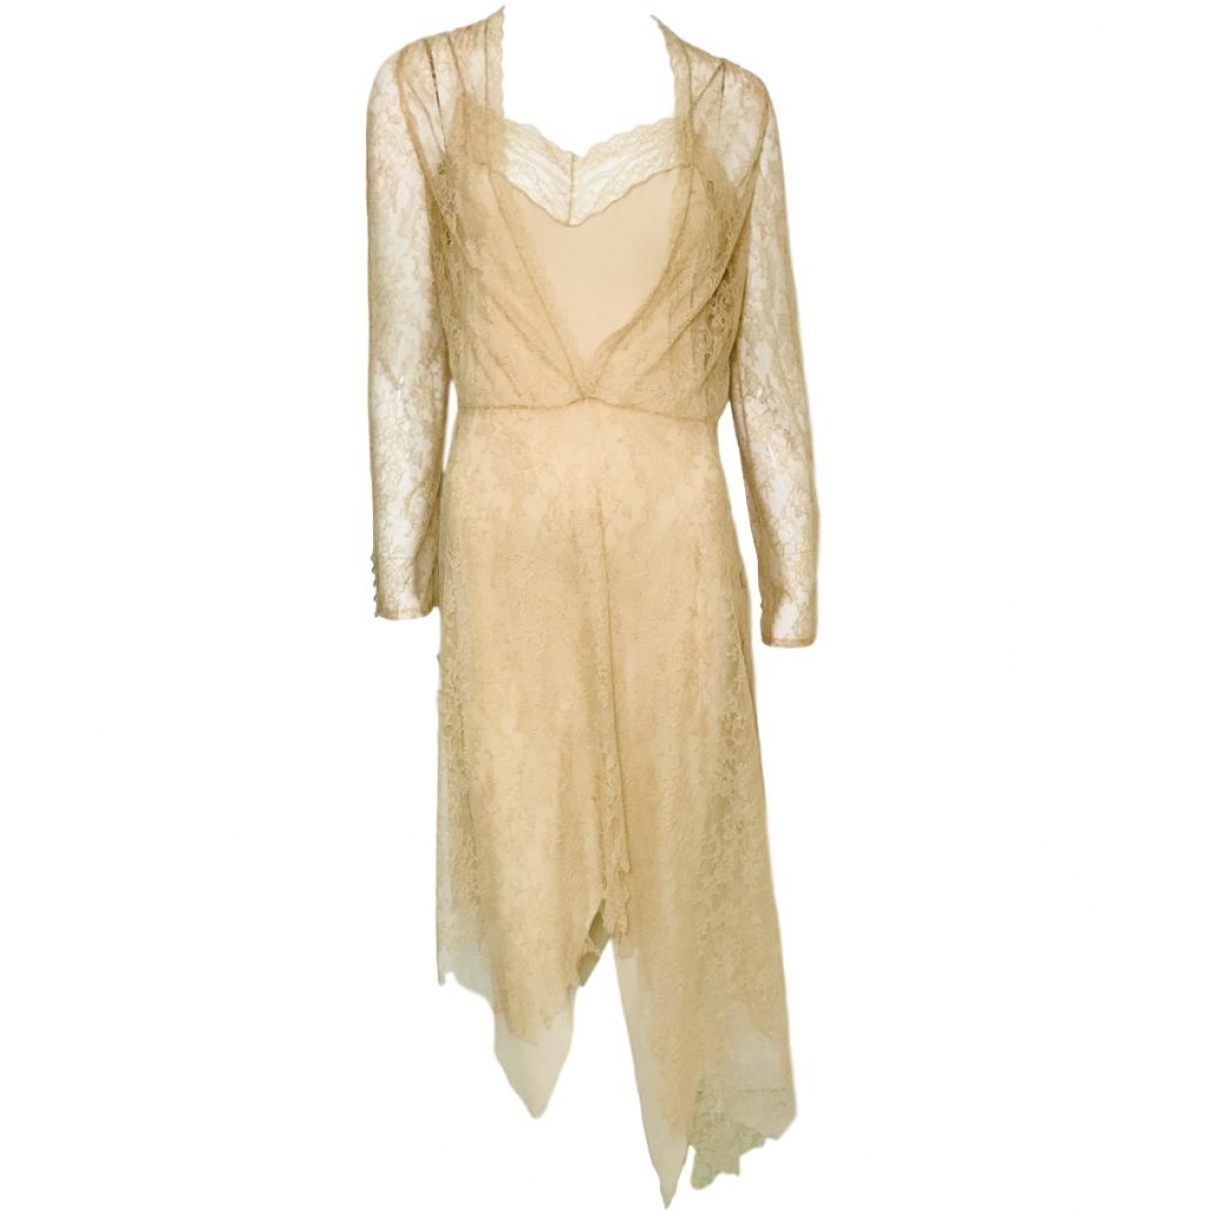 Givenchy \N Kleid in  Beige Synthetik